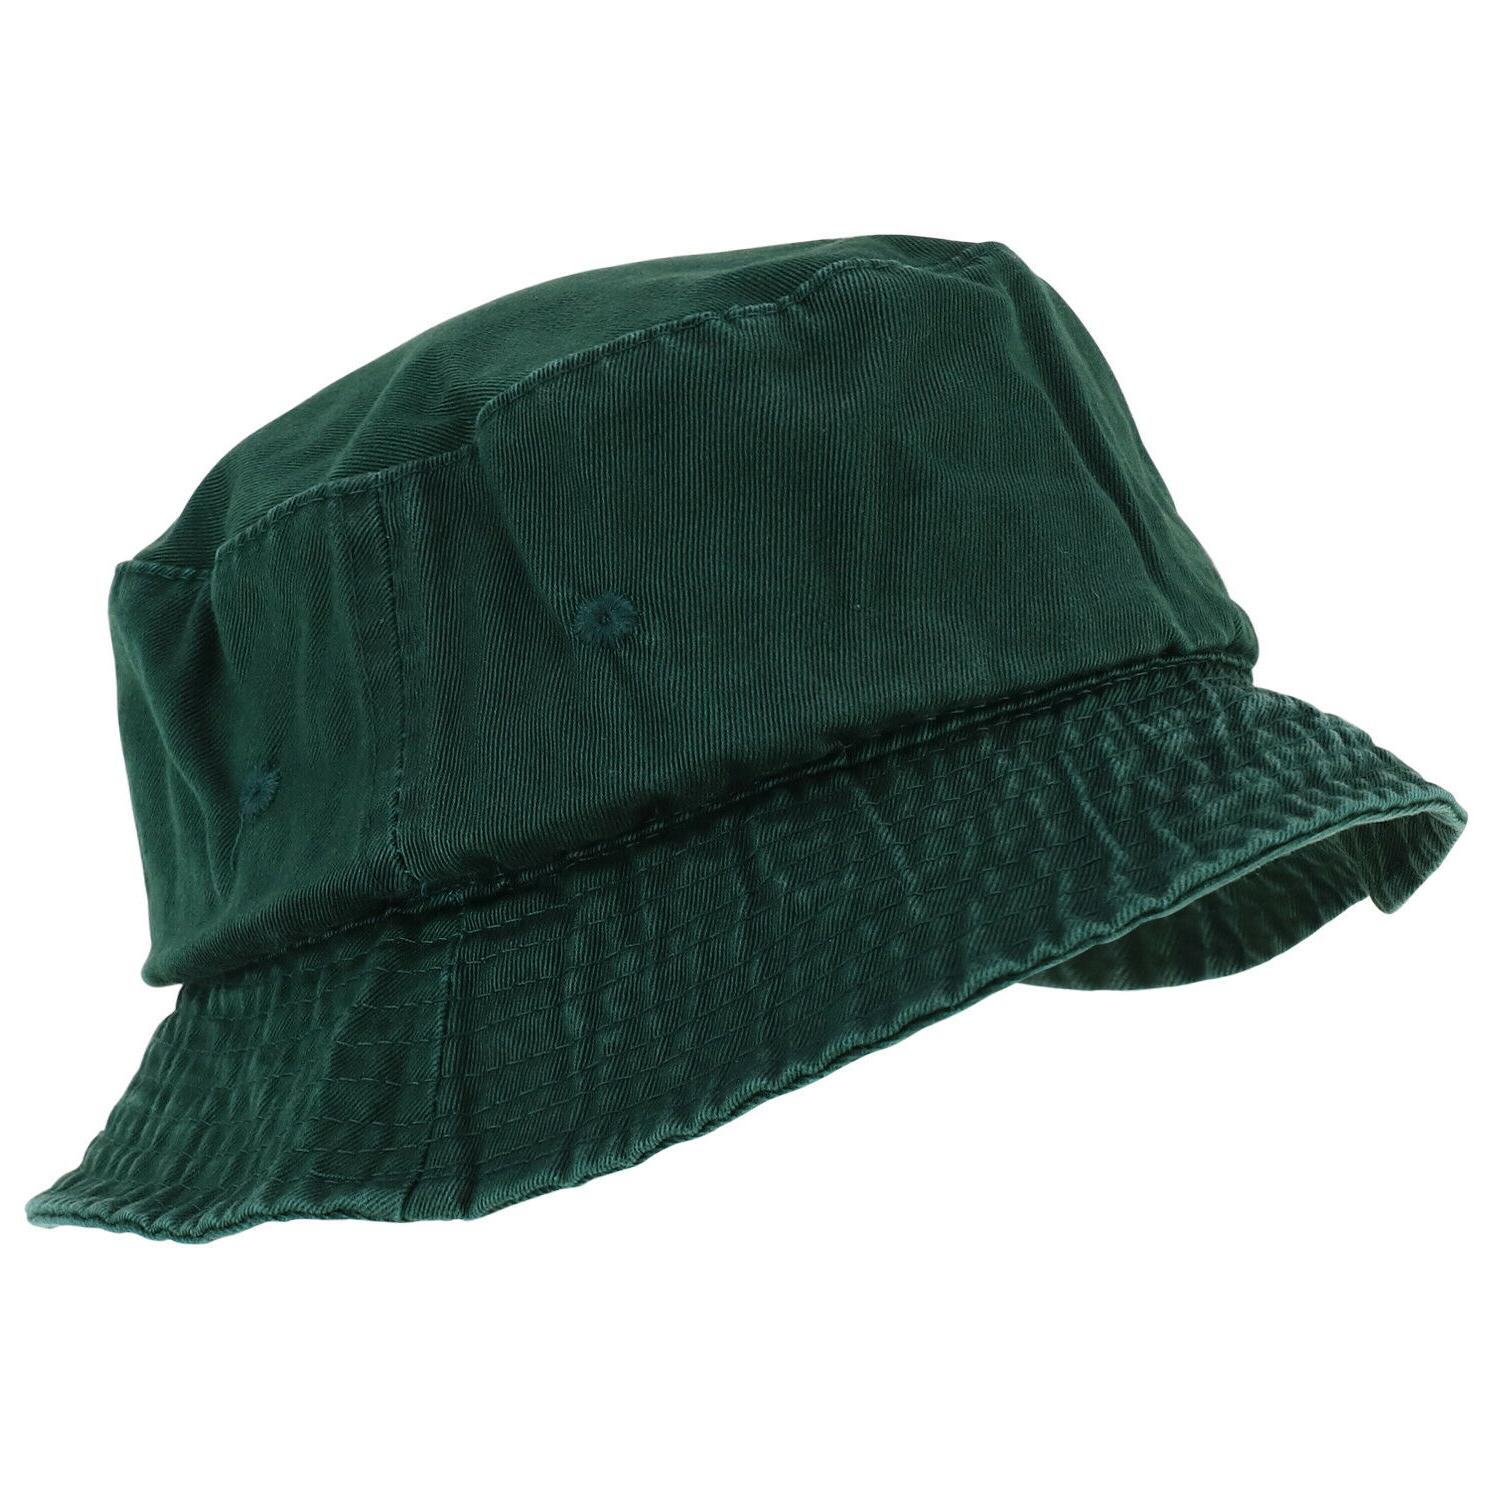 garment washed cotton twill casual bucket hat